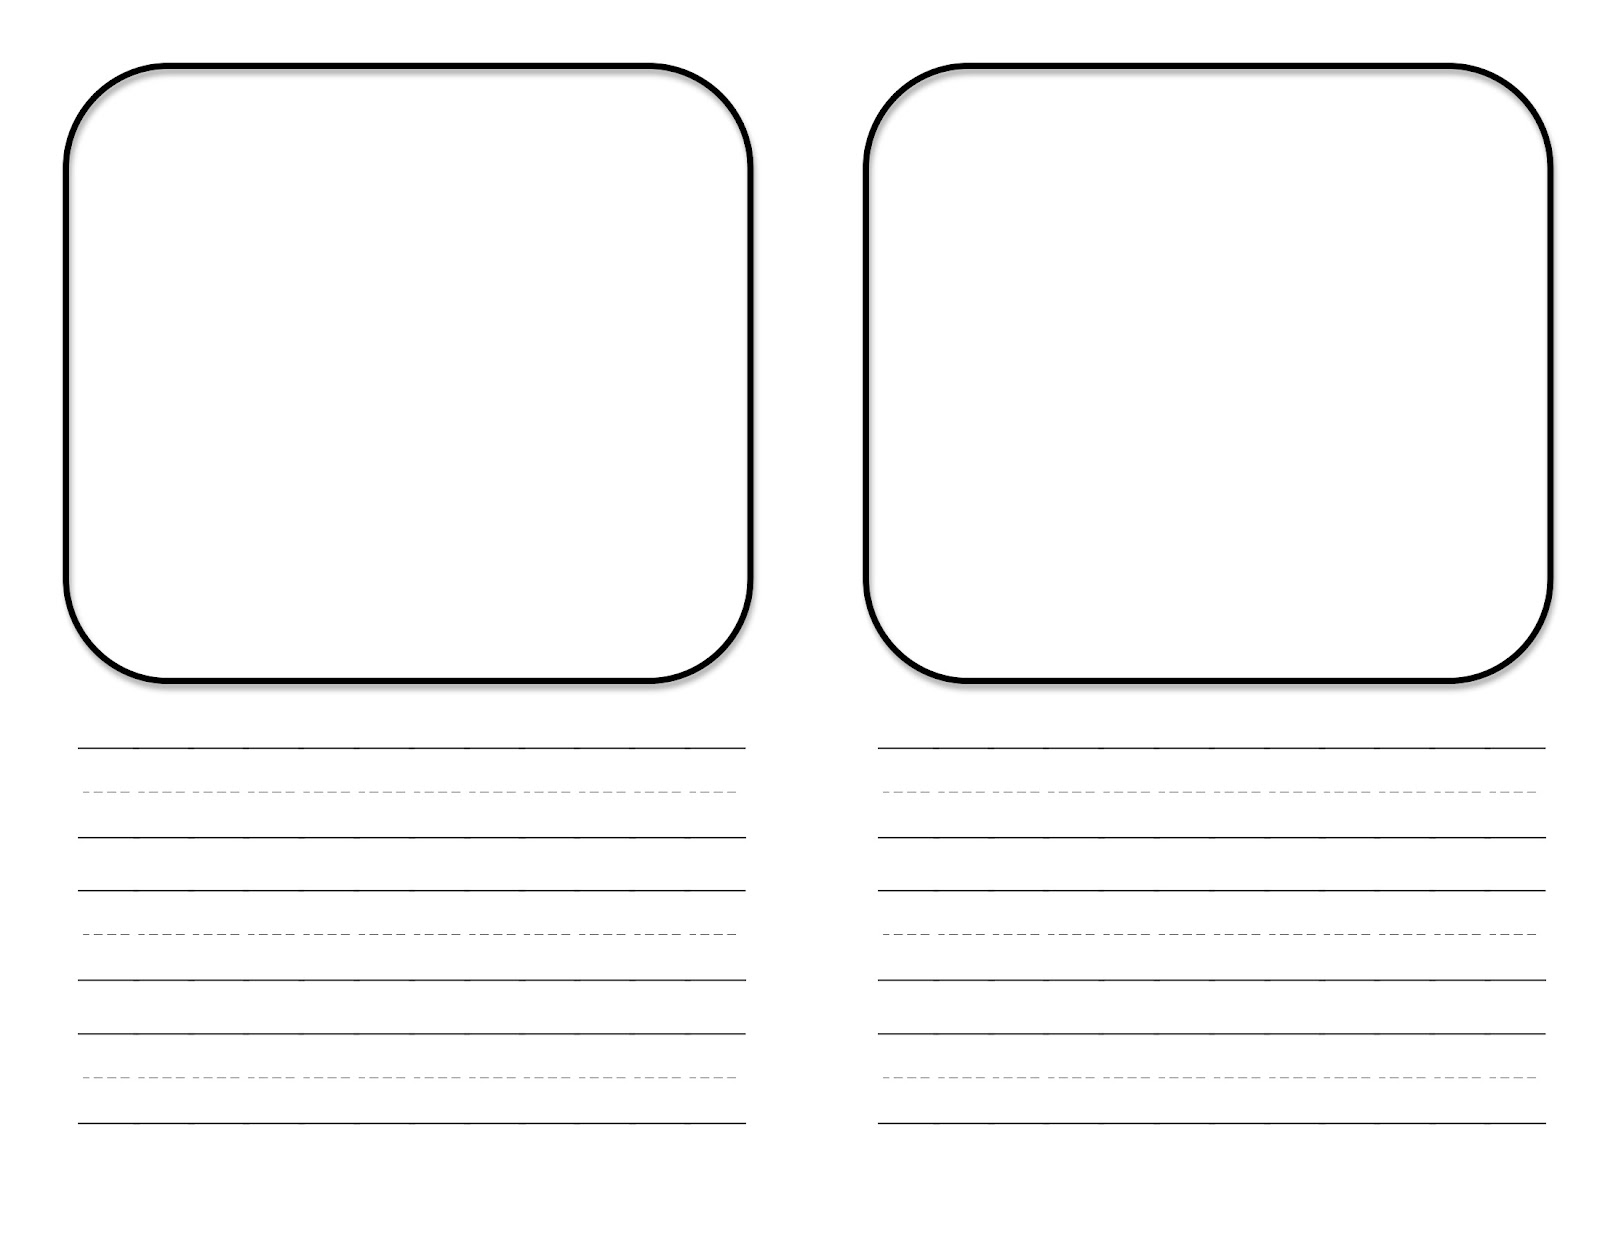 Mini book template free center teacher idea for Blank book template for kids